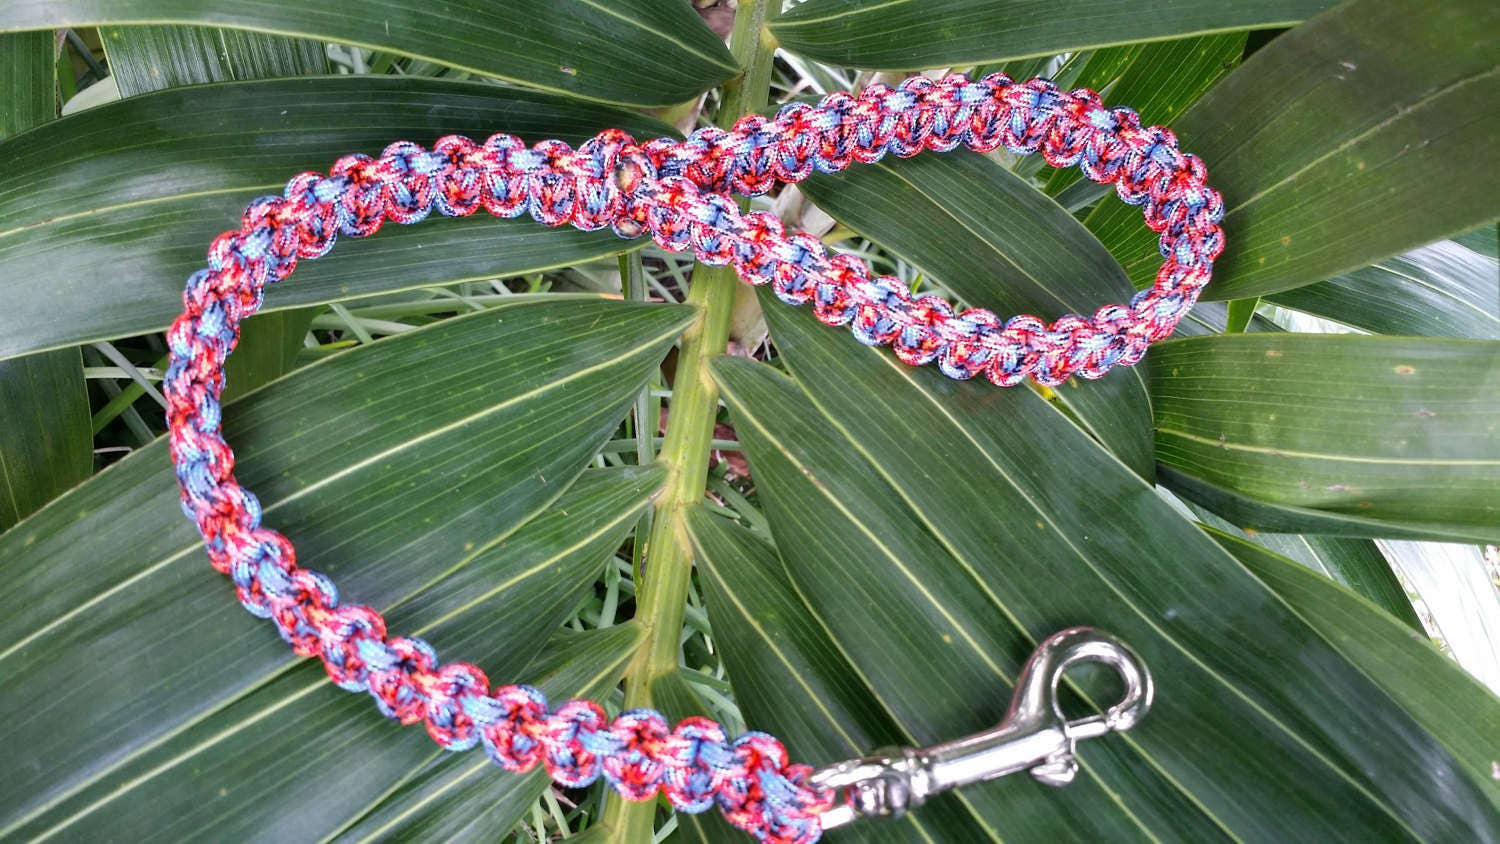 how to make a dog lead out of paracord